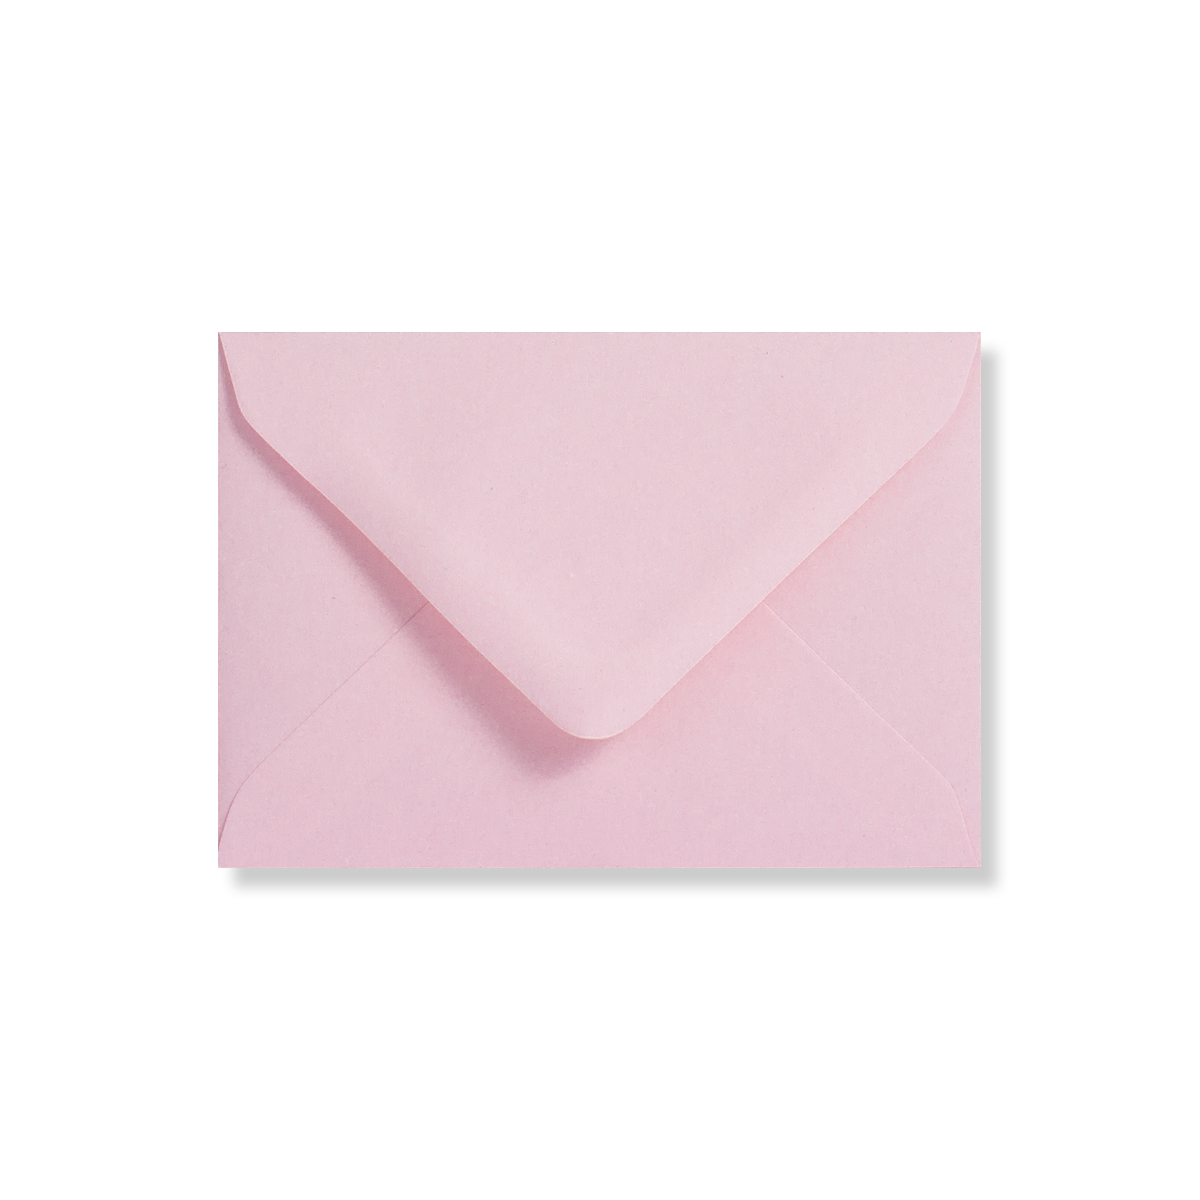 C7 PALE PINK ENVELOPES 120GSM